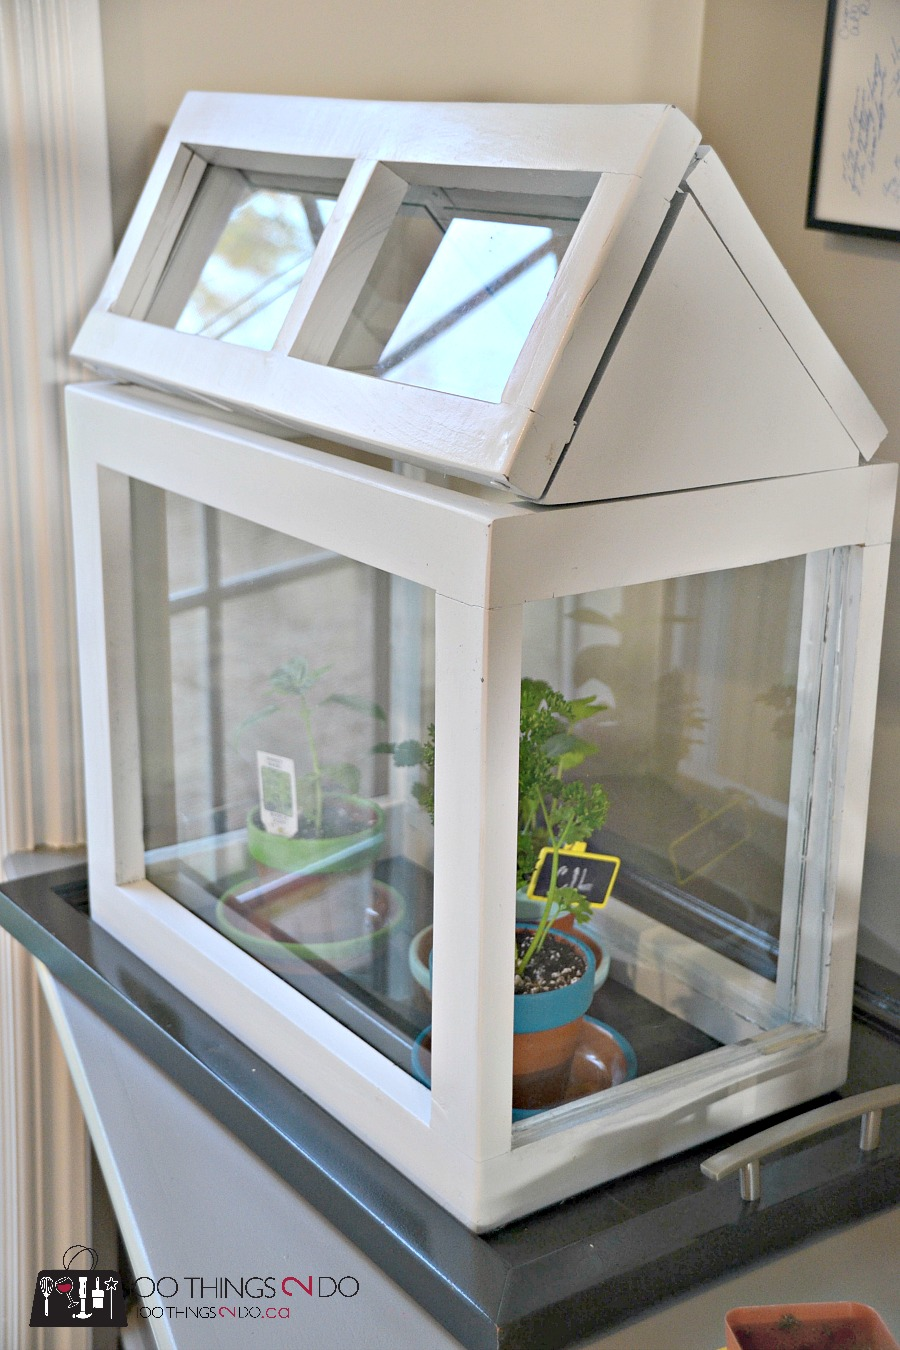 DIY tabletop greenhouse, mini greenhouse, DIY indoor greenhouse, small greenhouse, decorative greenhouse, terrarium